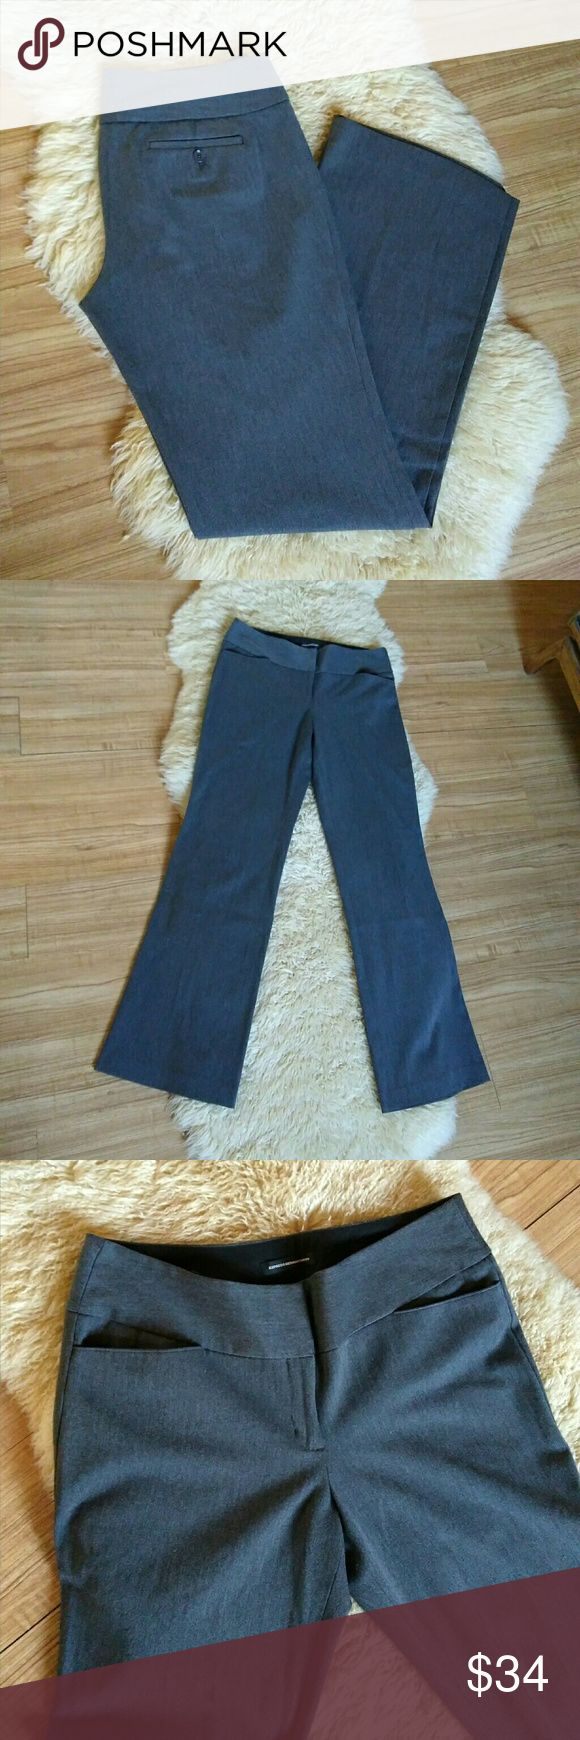 """Express 'The Editor' Dress Pants Size 10 Long Quality, comfortable, ladies trousers in excellent, very gently worn condition, no stains, tears, ect.  $79 retail.  Inseam- 35"""" (Fit someone 5'9-5'10).  61% polyester, 34% viscose & 5% elastane.  Bundle & save 30% OFF 2+  Ship same or next day!  #gray #grey #Size M Medium #office #work #business #10L #solid Express Pants Trousers"""